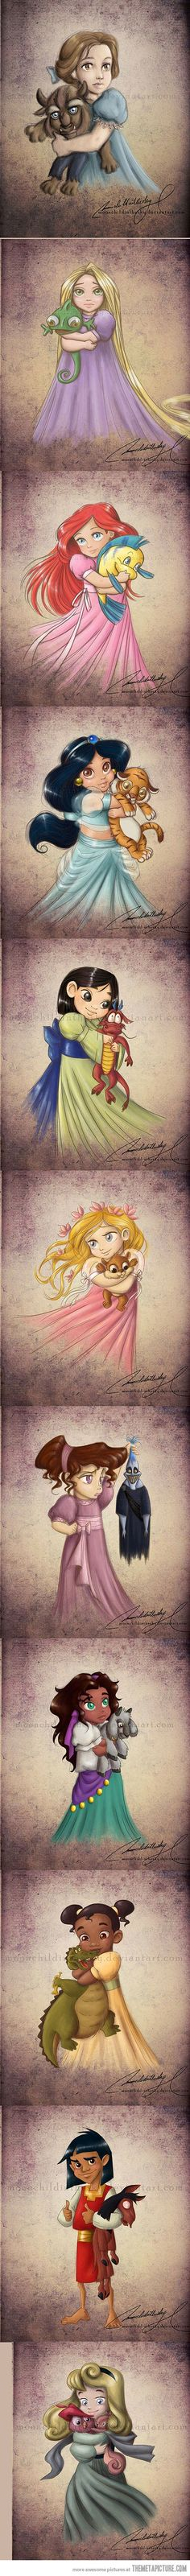 Little Disney Princesses and Their Pets.